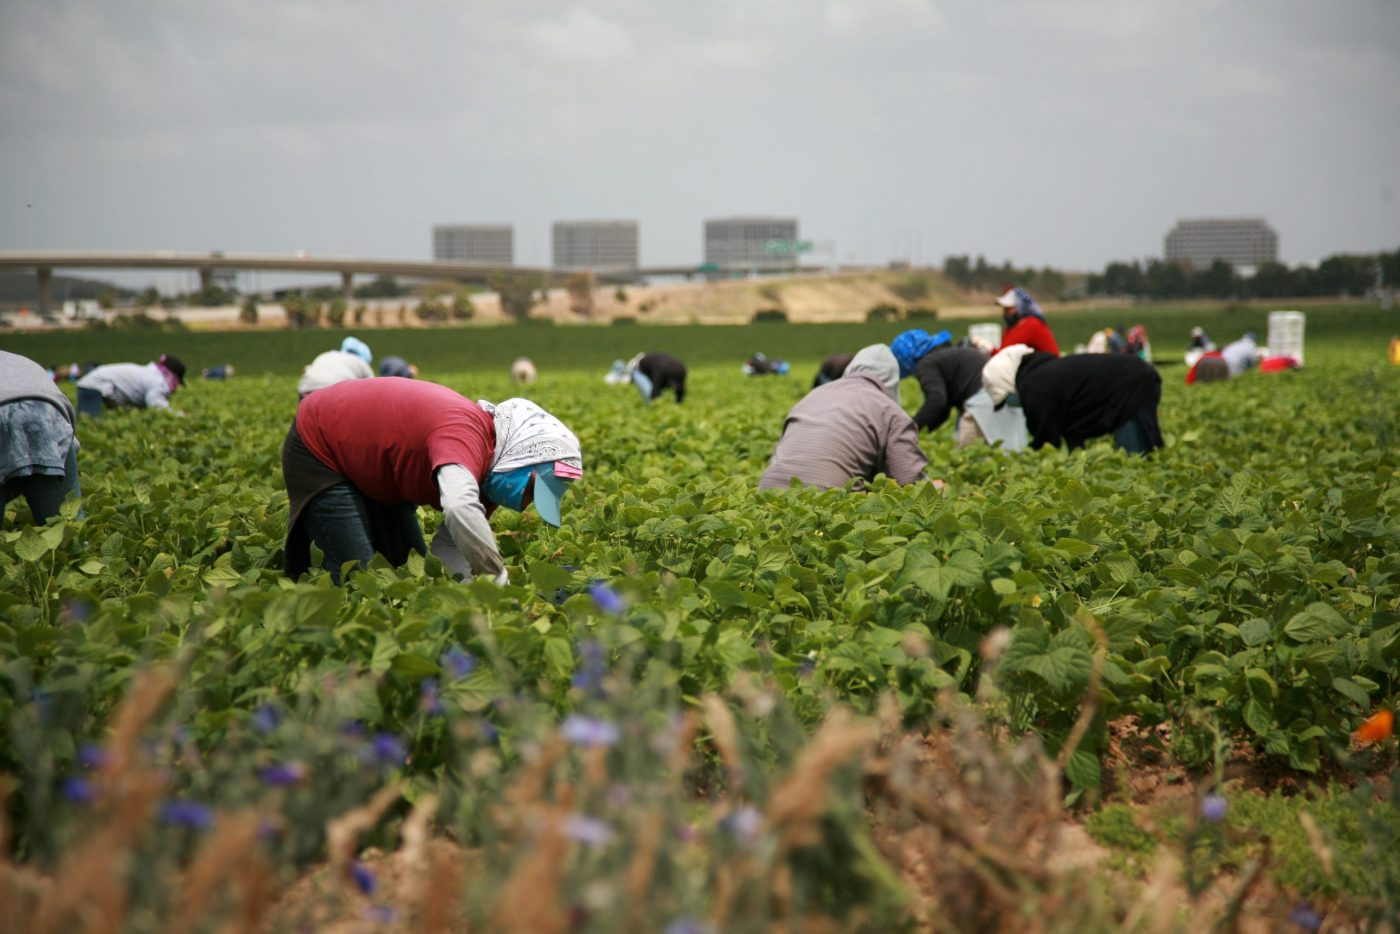 Vertical explainer photo 2 - Workers pick green beans in a field.